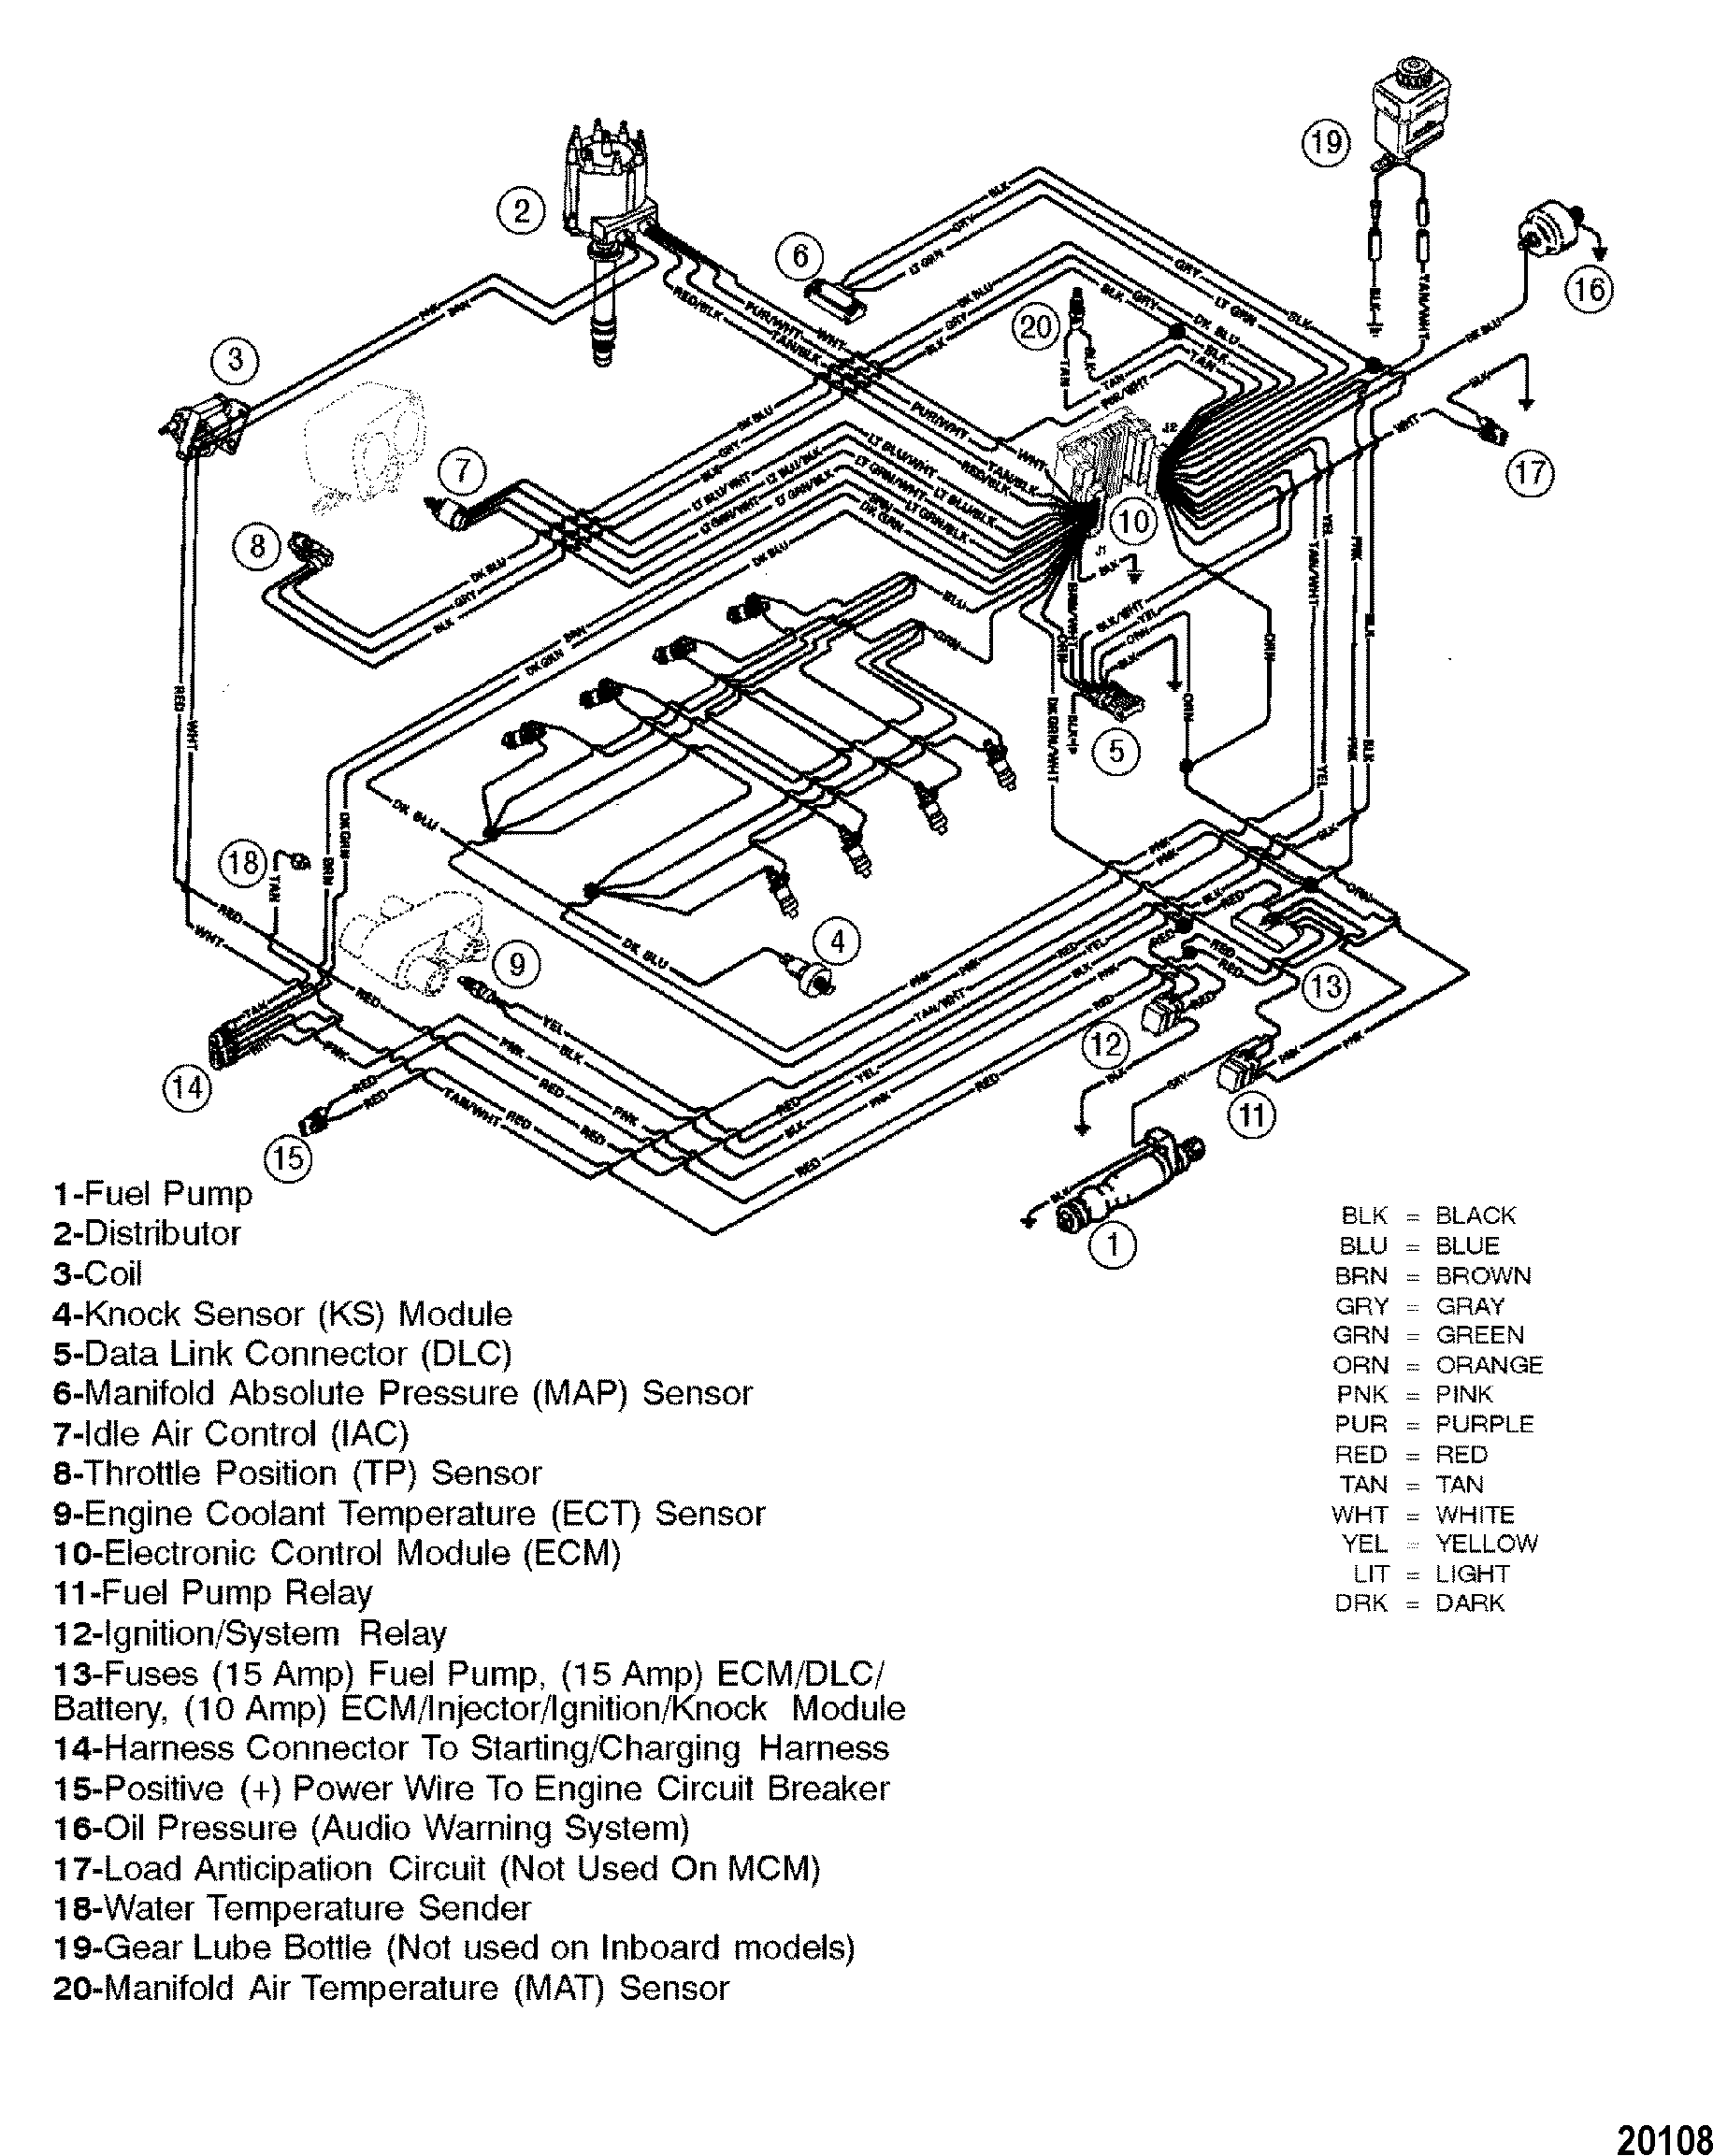 mercruiser 5 7 wiring diagram   29 wiring diagram images